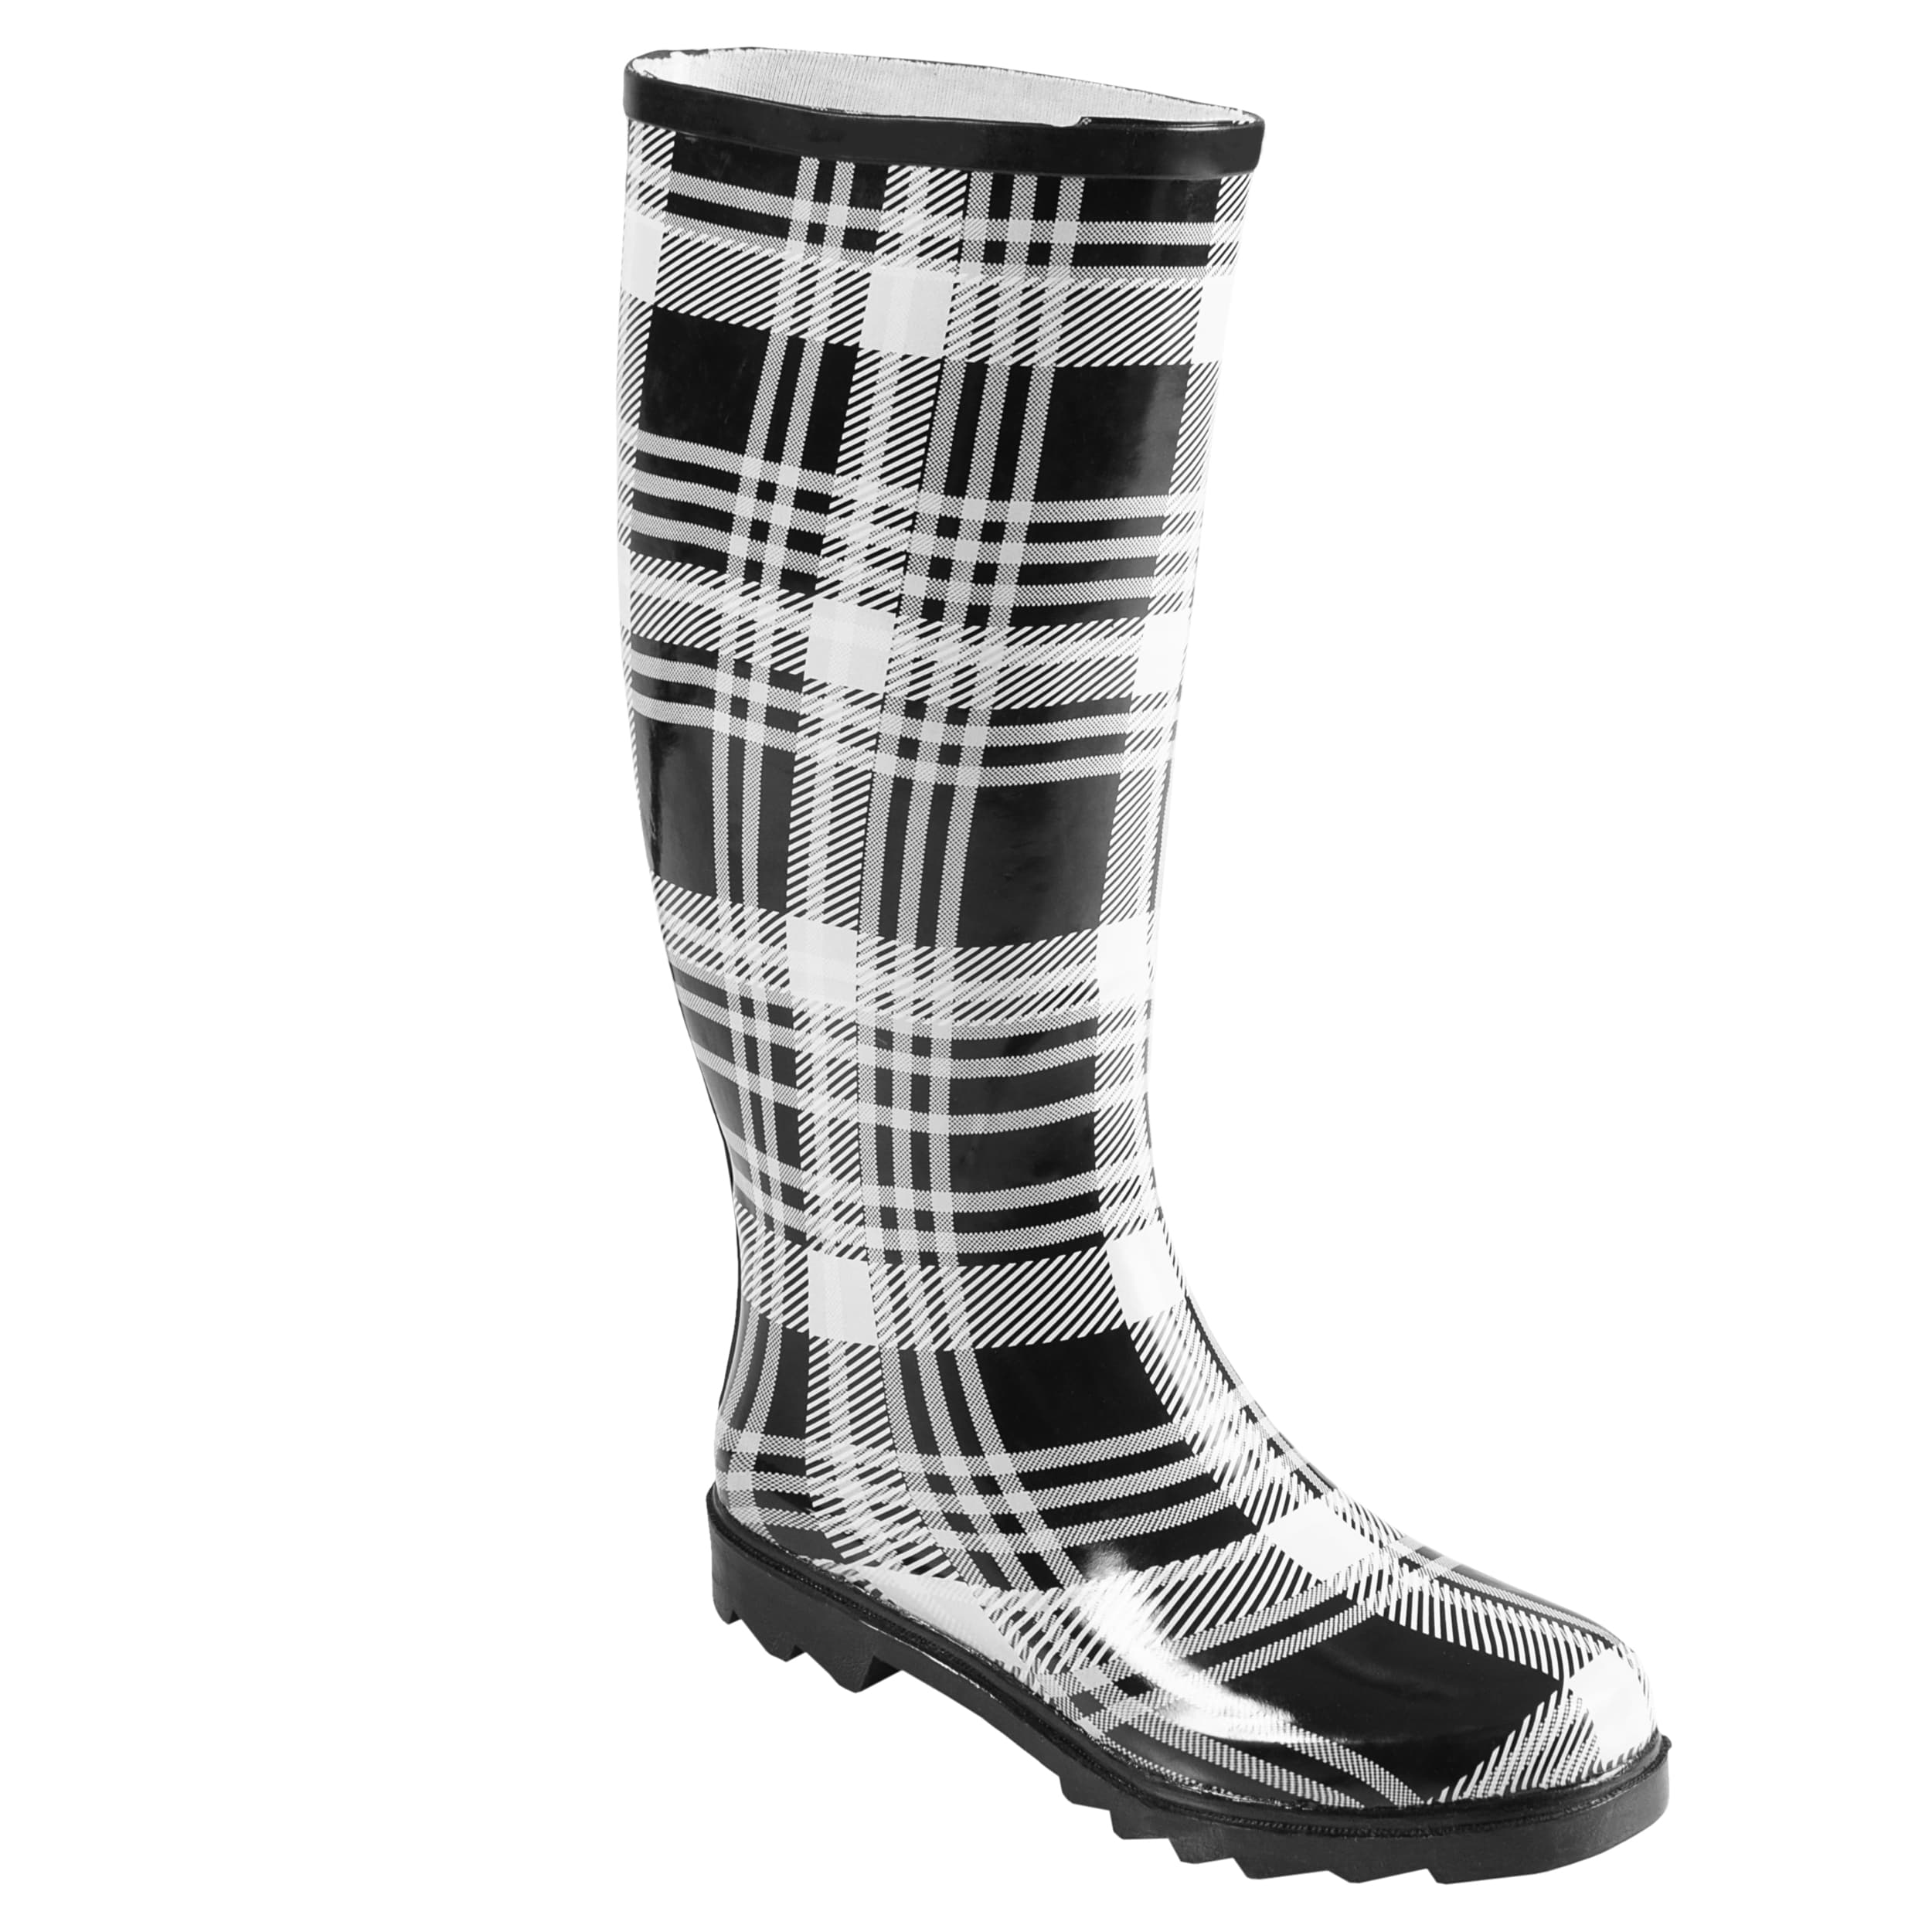 Journee Collection Women's Lined Plaid Rainboots